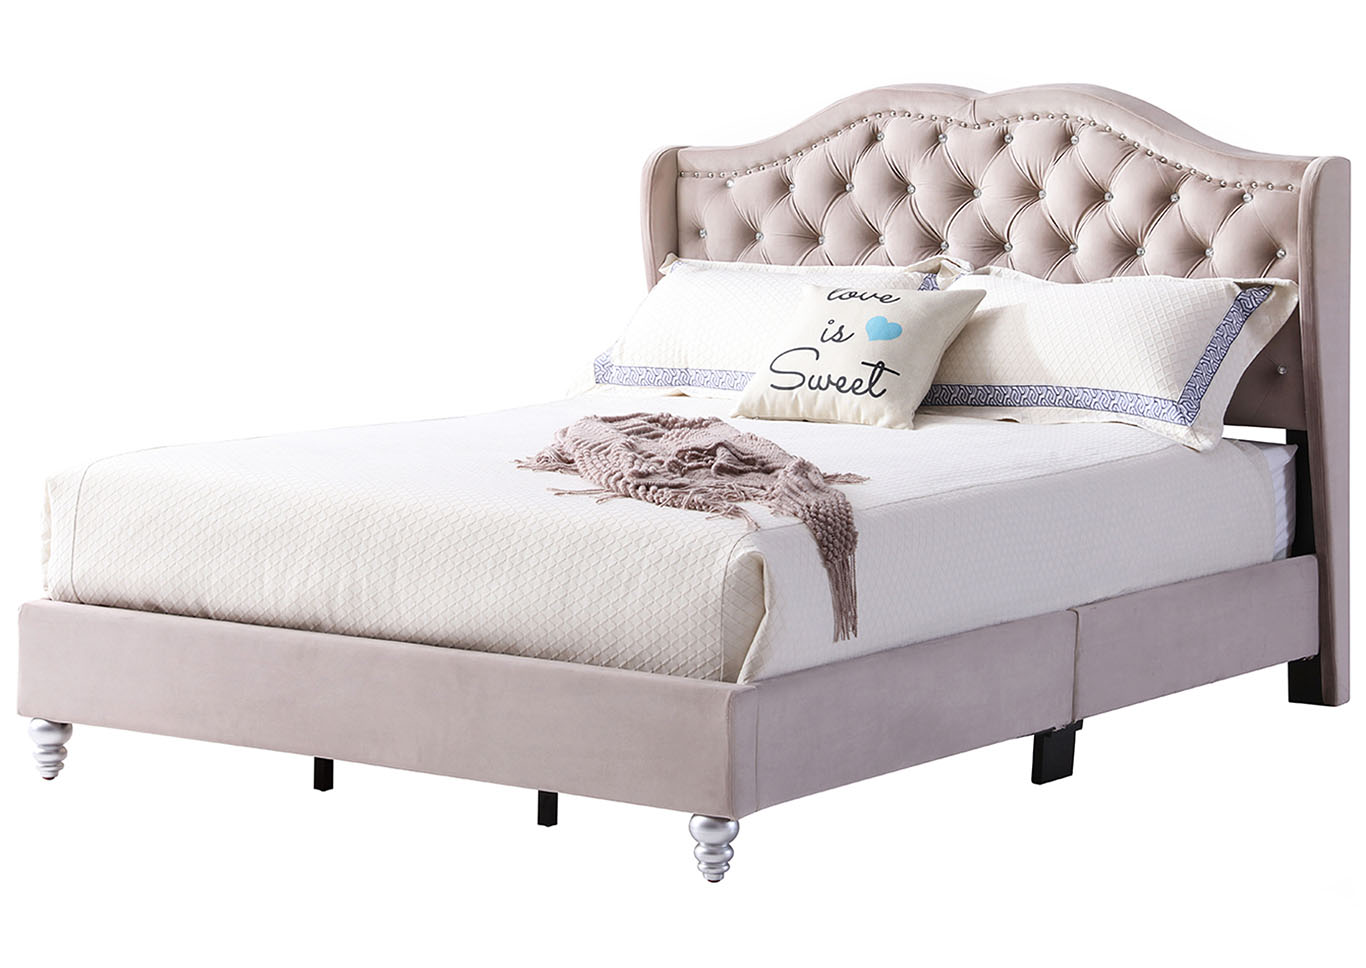 Beige Micro Suede Upholstered Full Bed,Glory Furniture